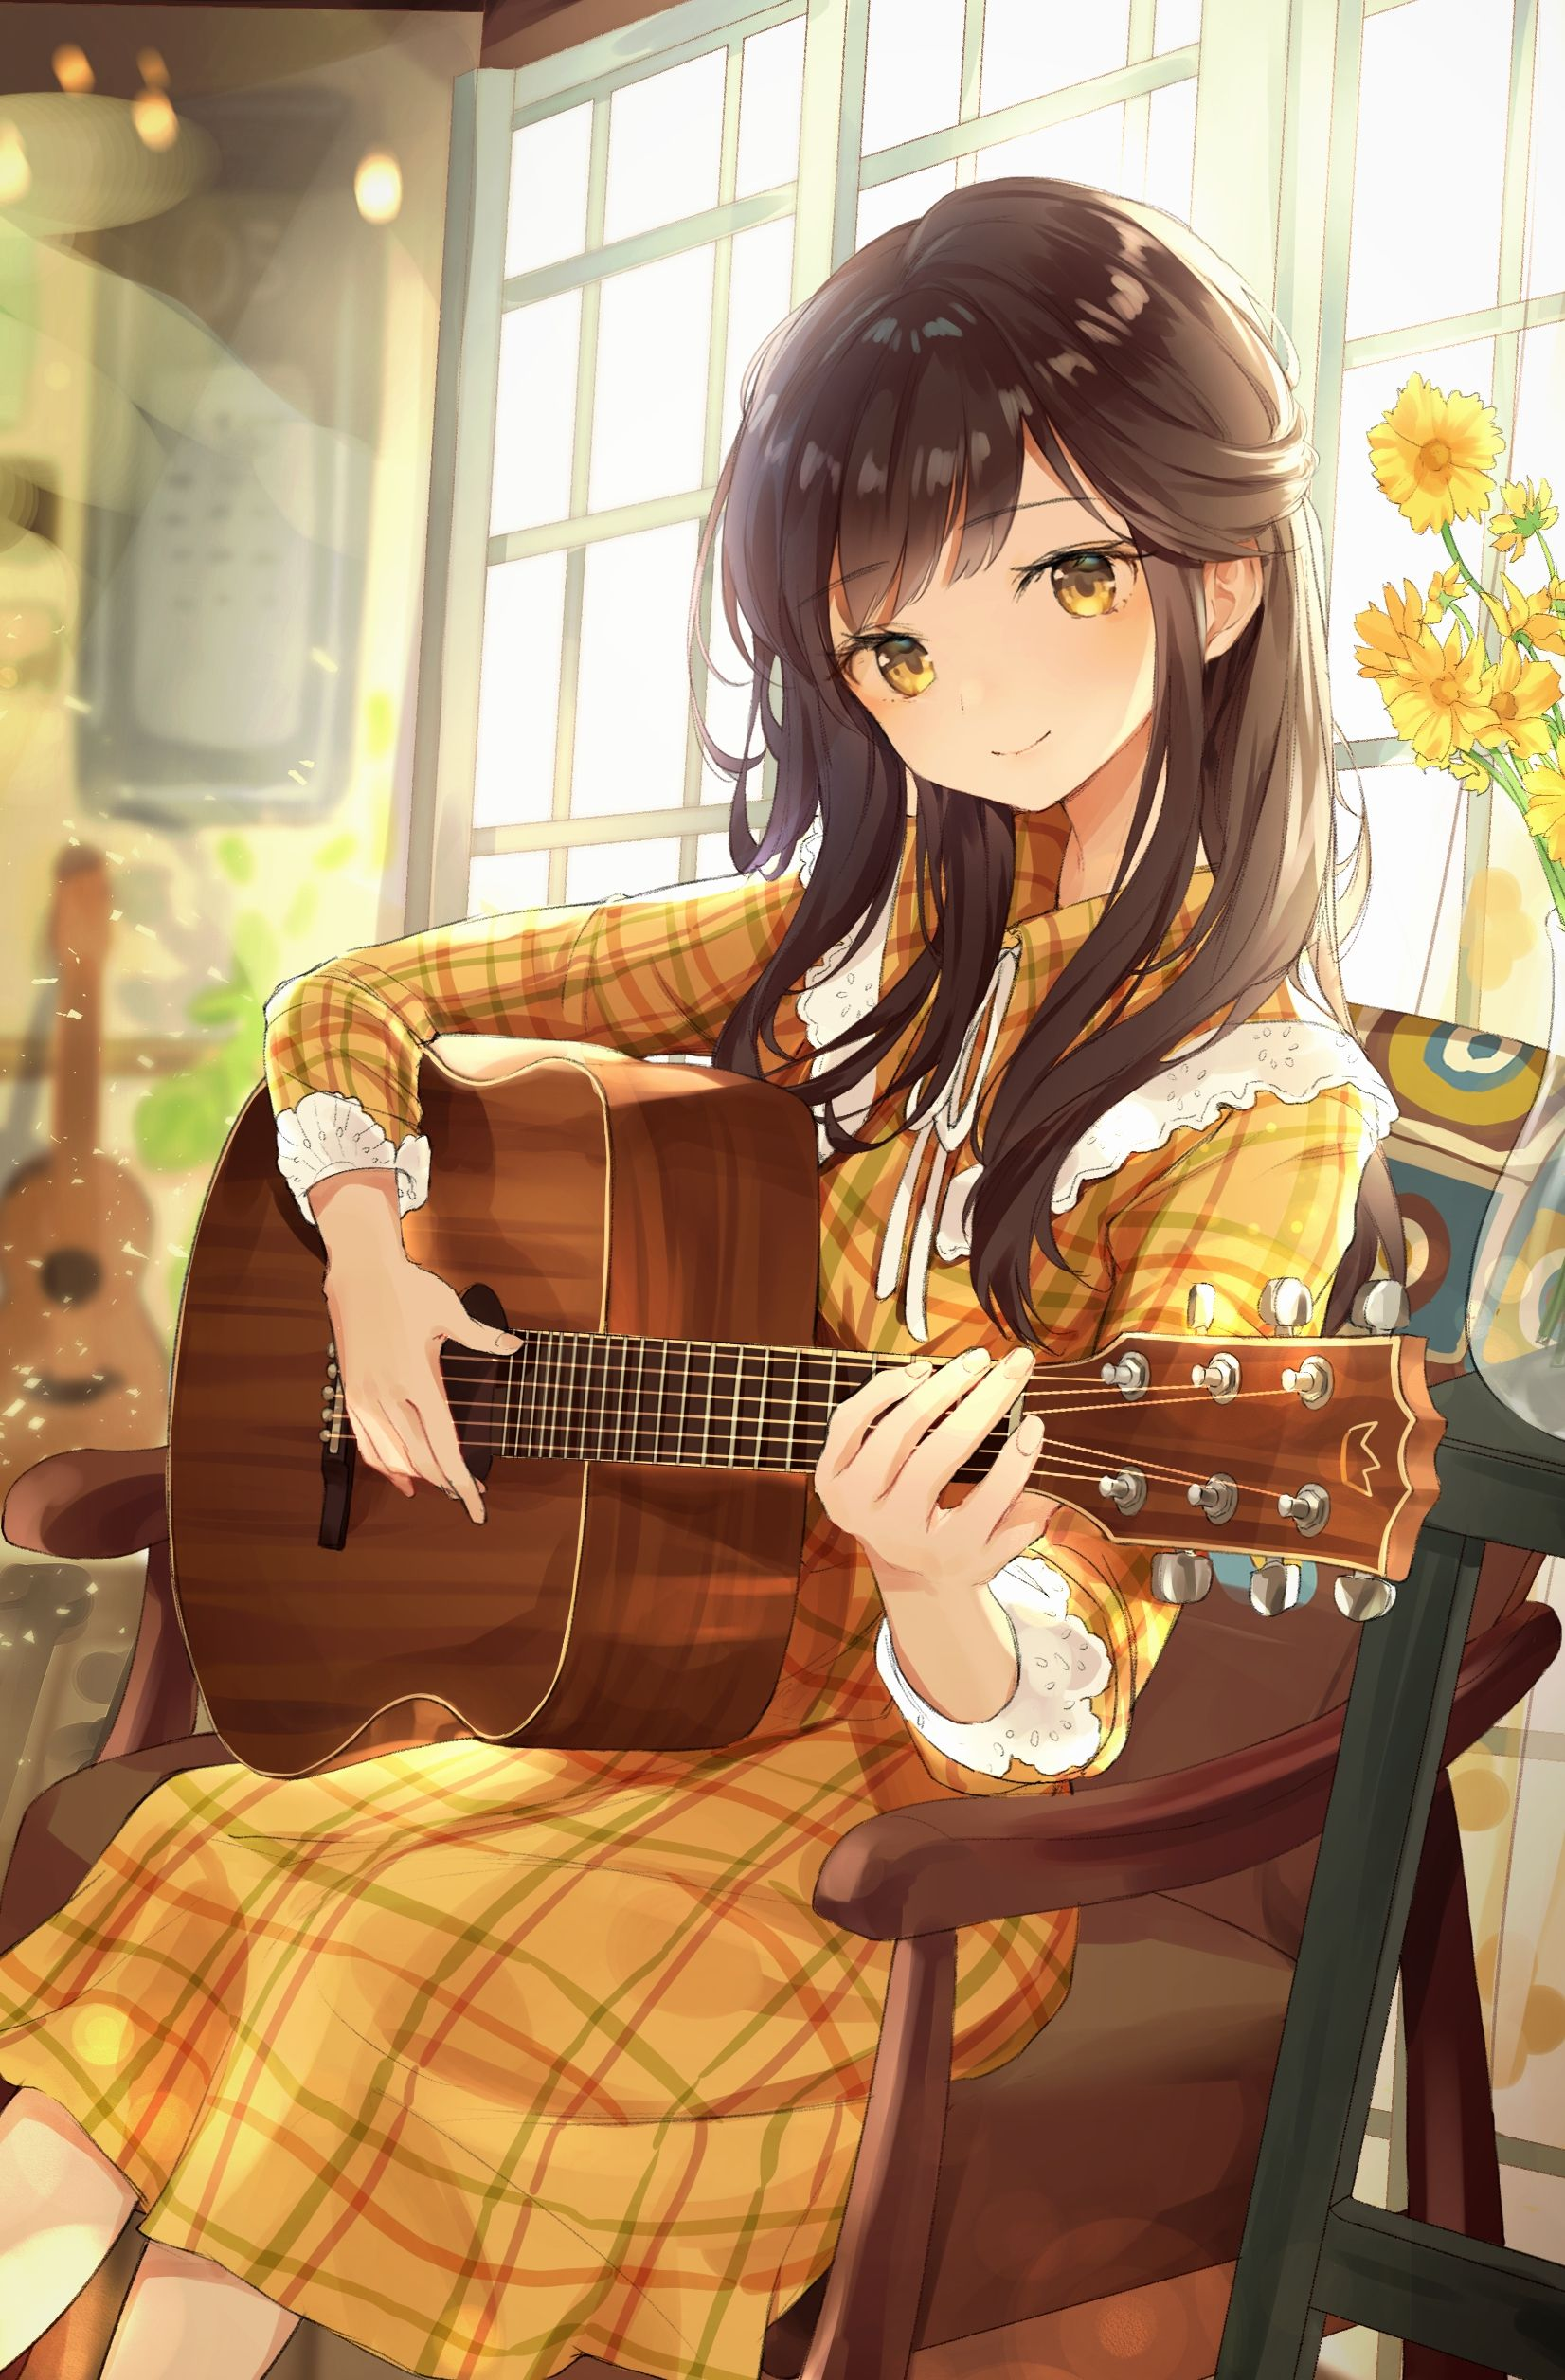 Download 1652x2512 Anime Girl, Playing Guitar, Instrument